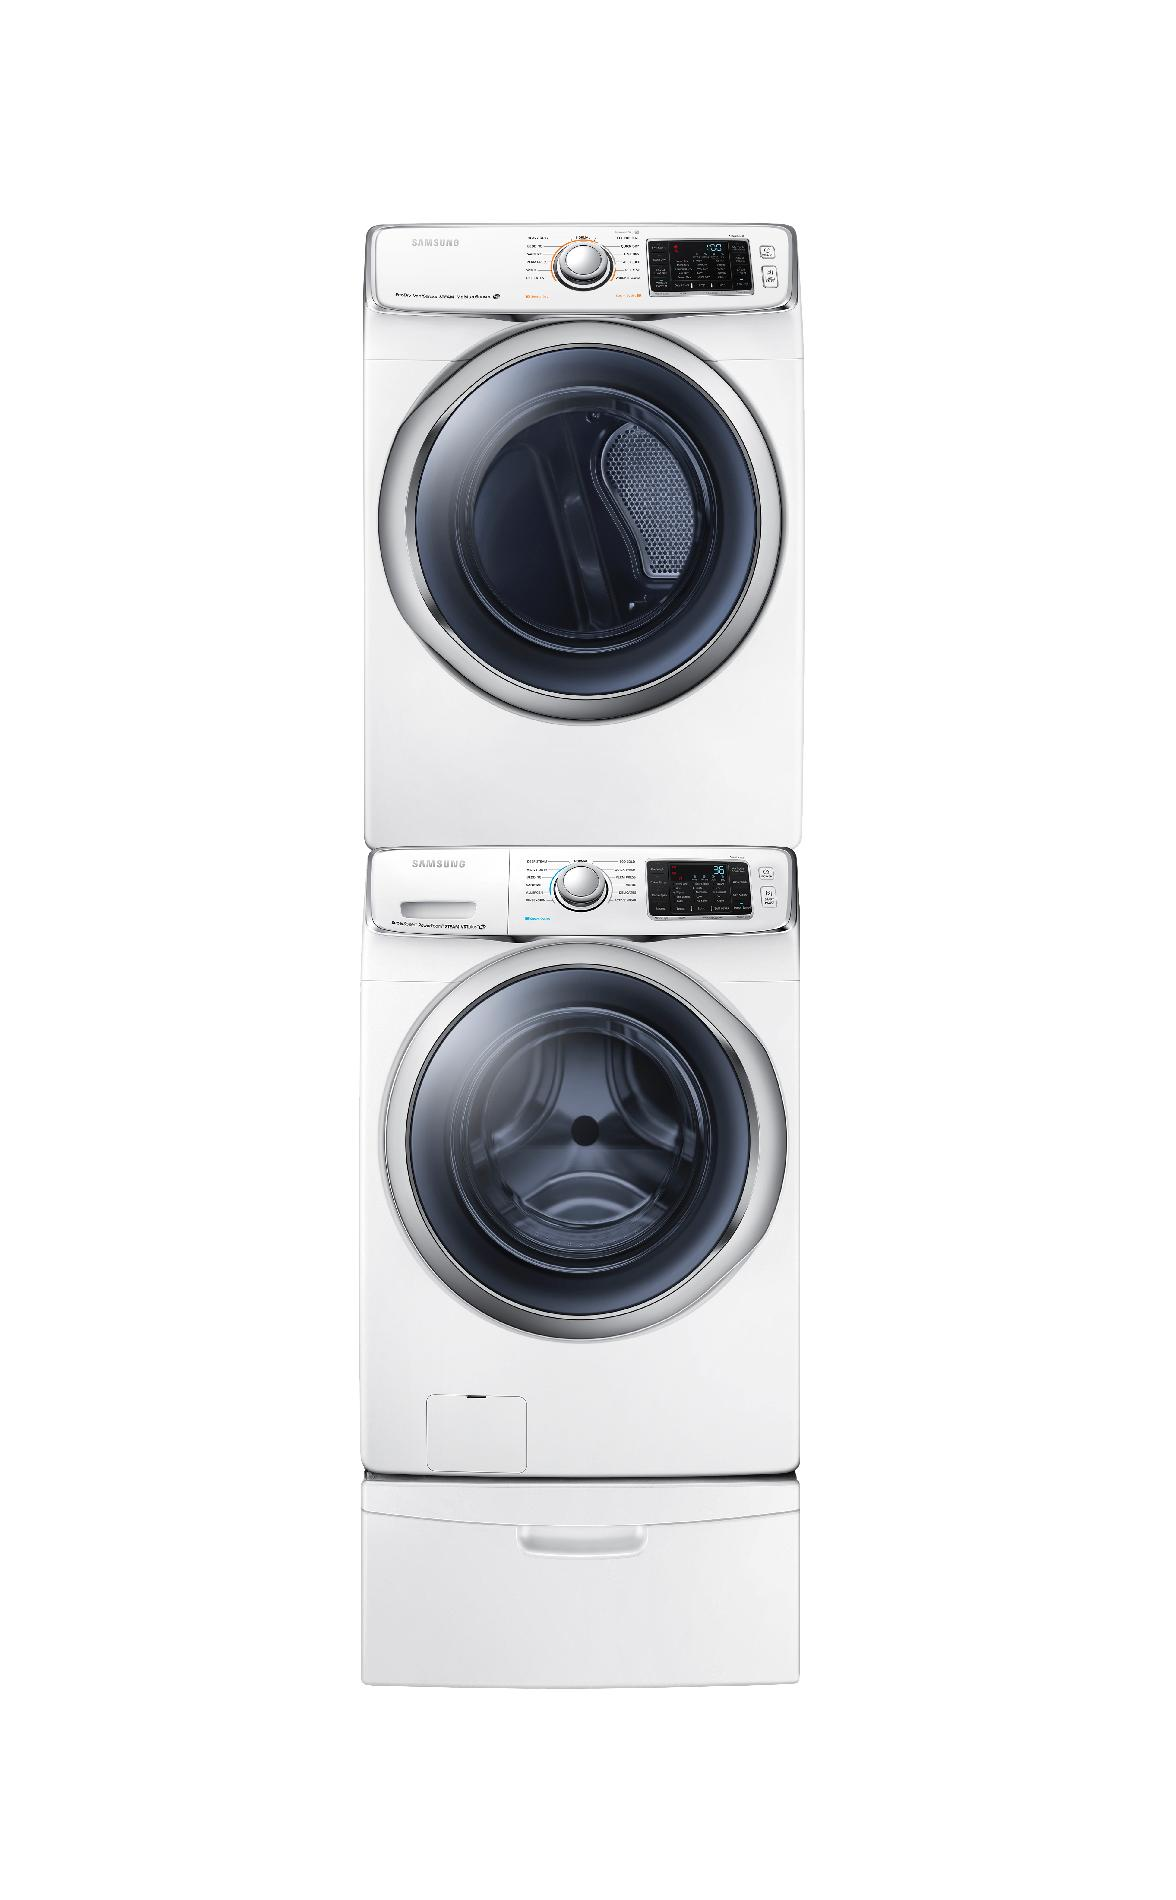 Samsung 7.5 cu. ft. Gas Dryer - White